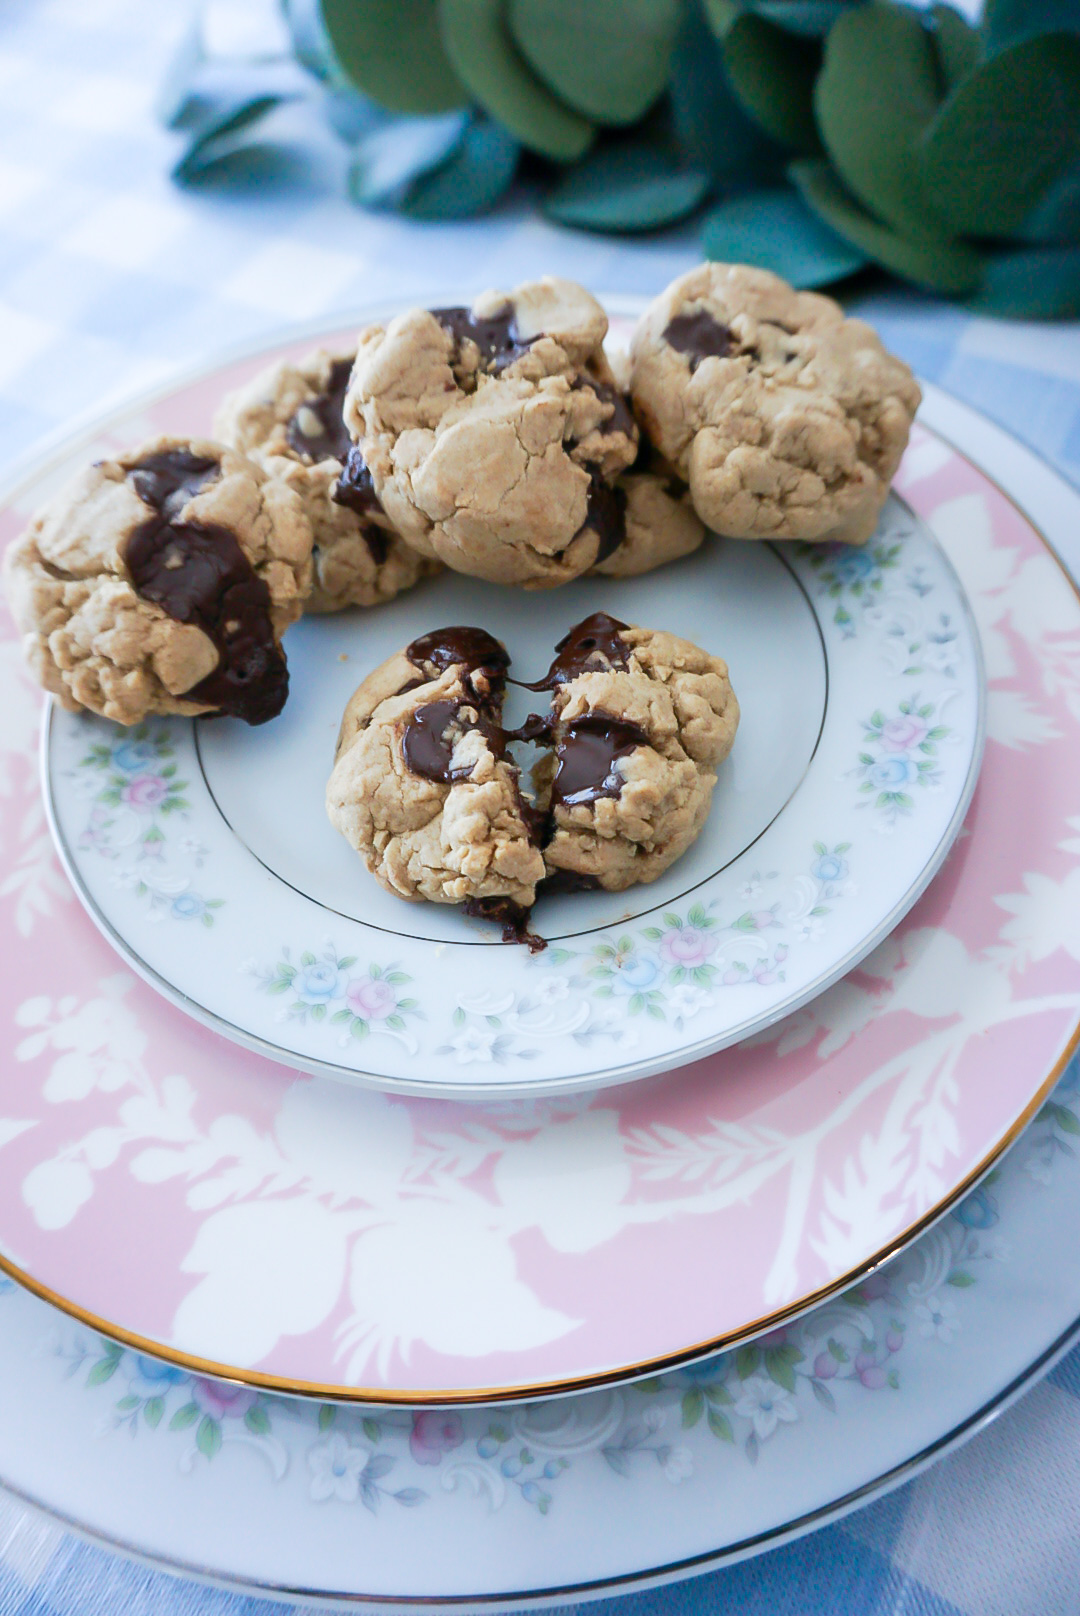 refined sugar-free snacks, refined sugar-free desserts, refined sugar-free cookies, cookies sweetened with maple syrup, healthy cookies